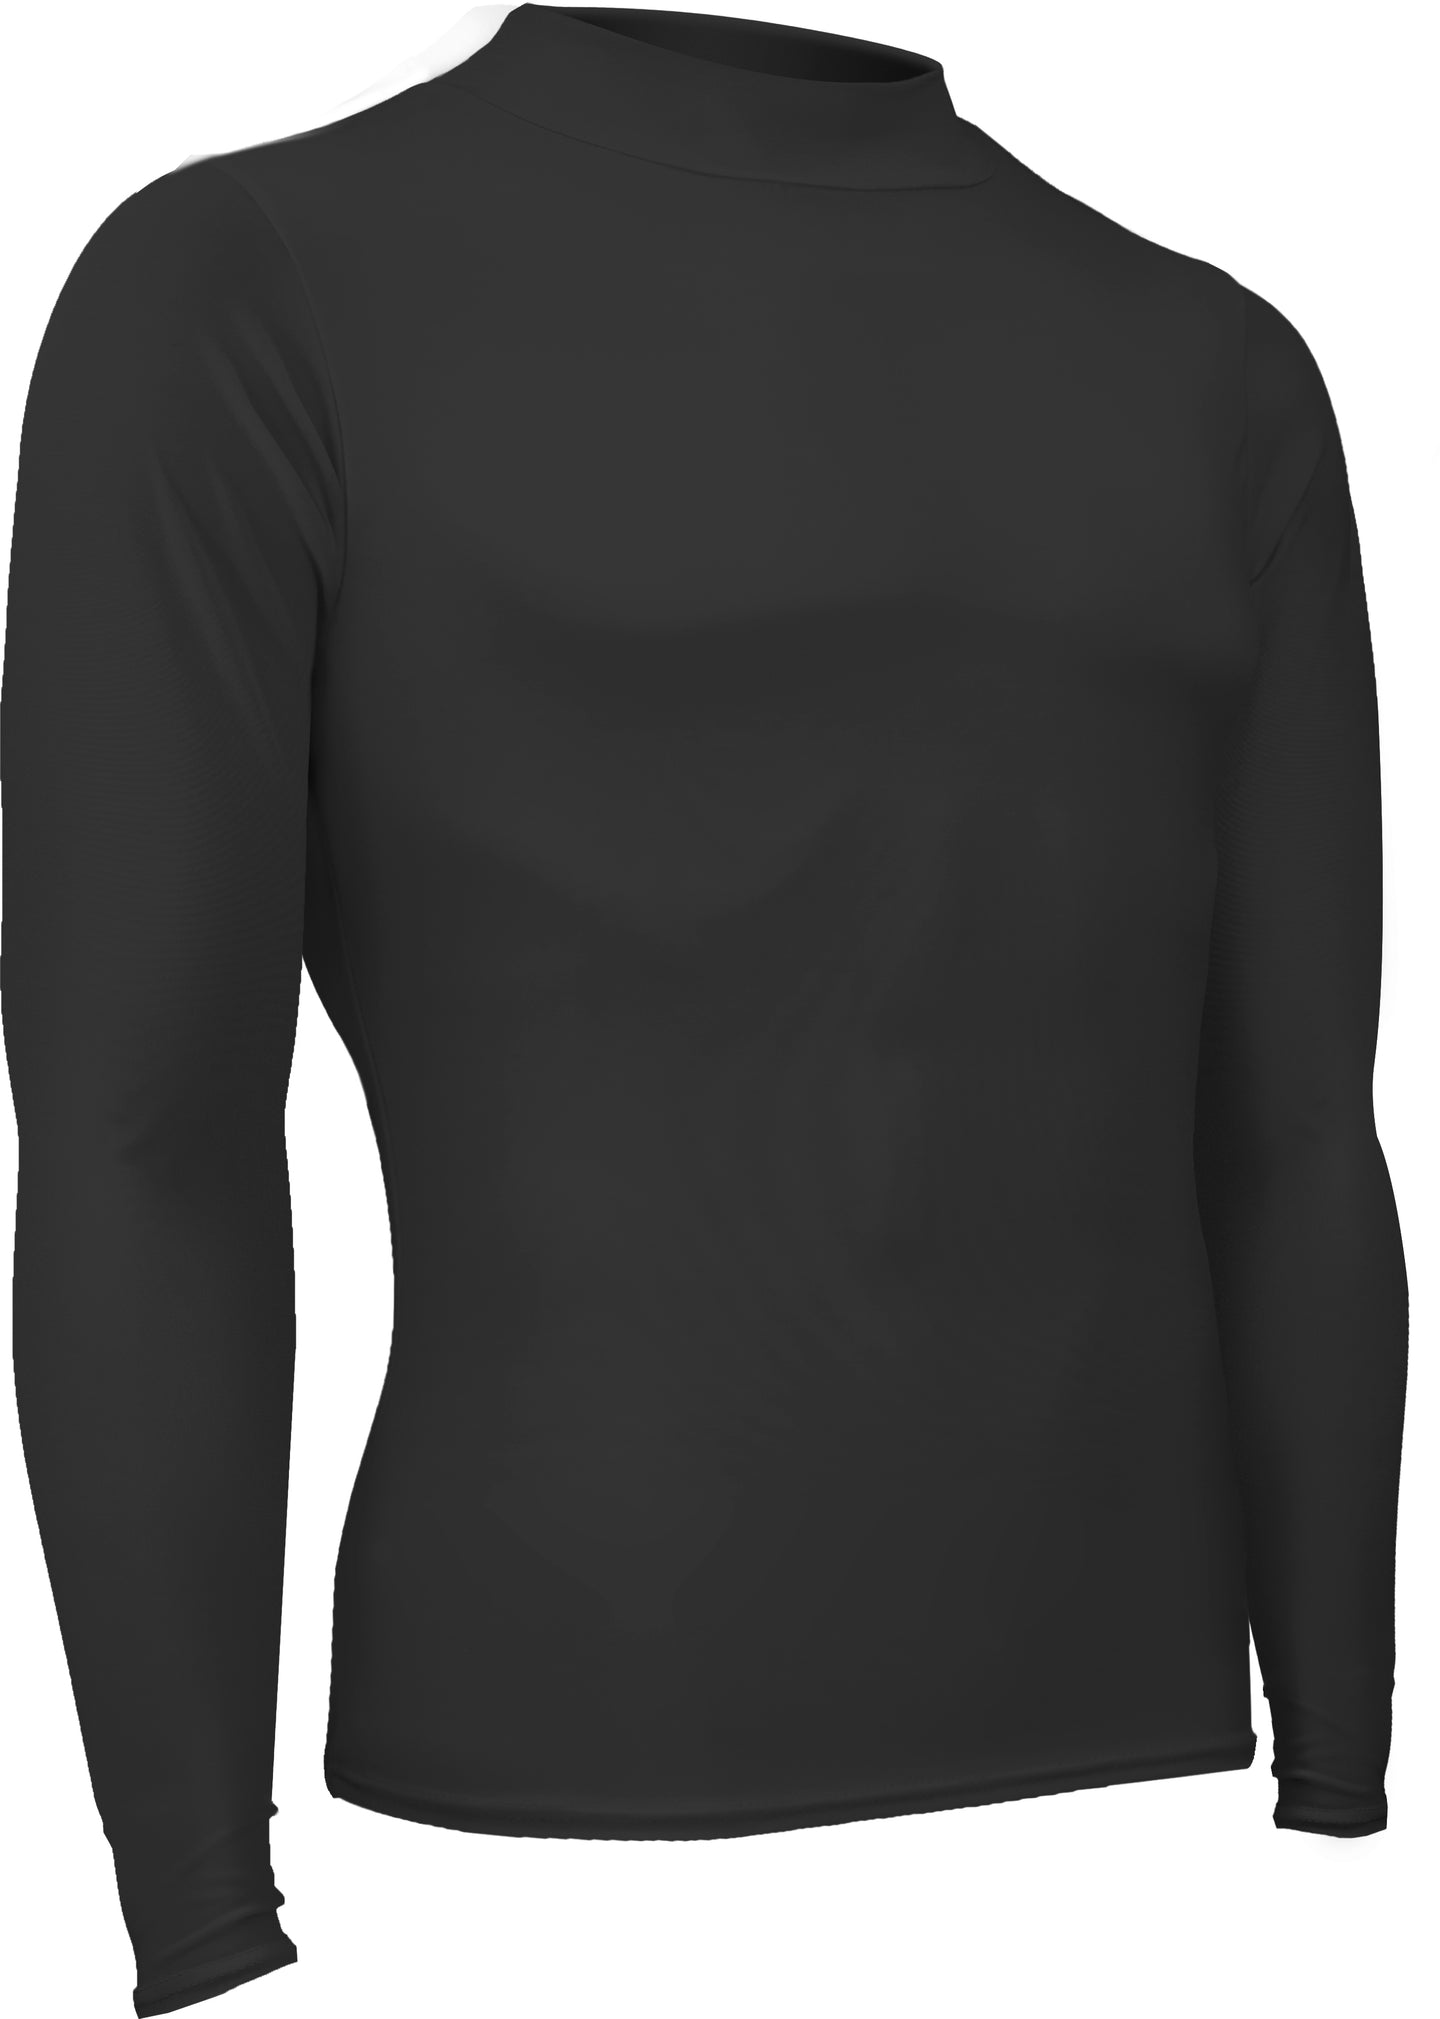 CT-501LY-CB Youth Cold Tech Youth Long Sleeve Mock Neck